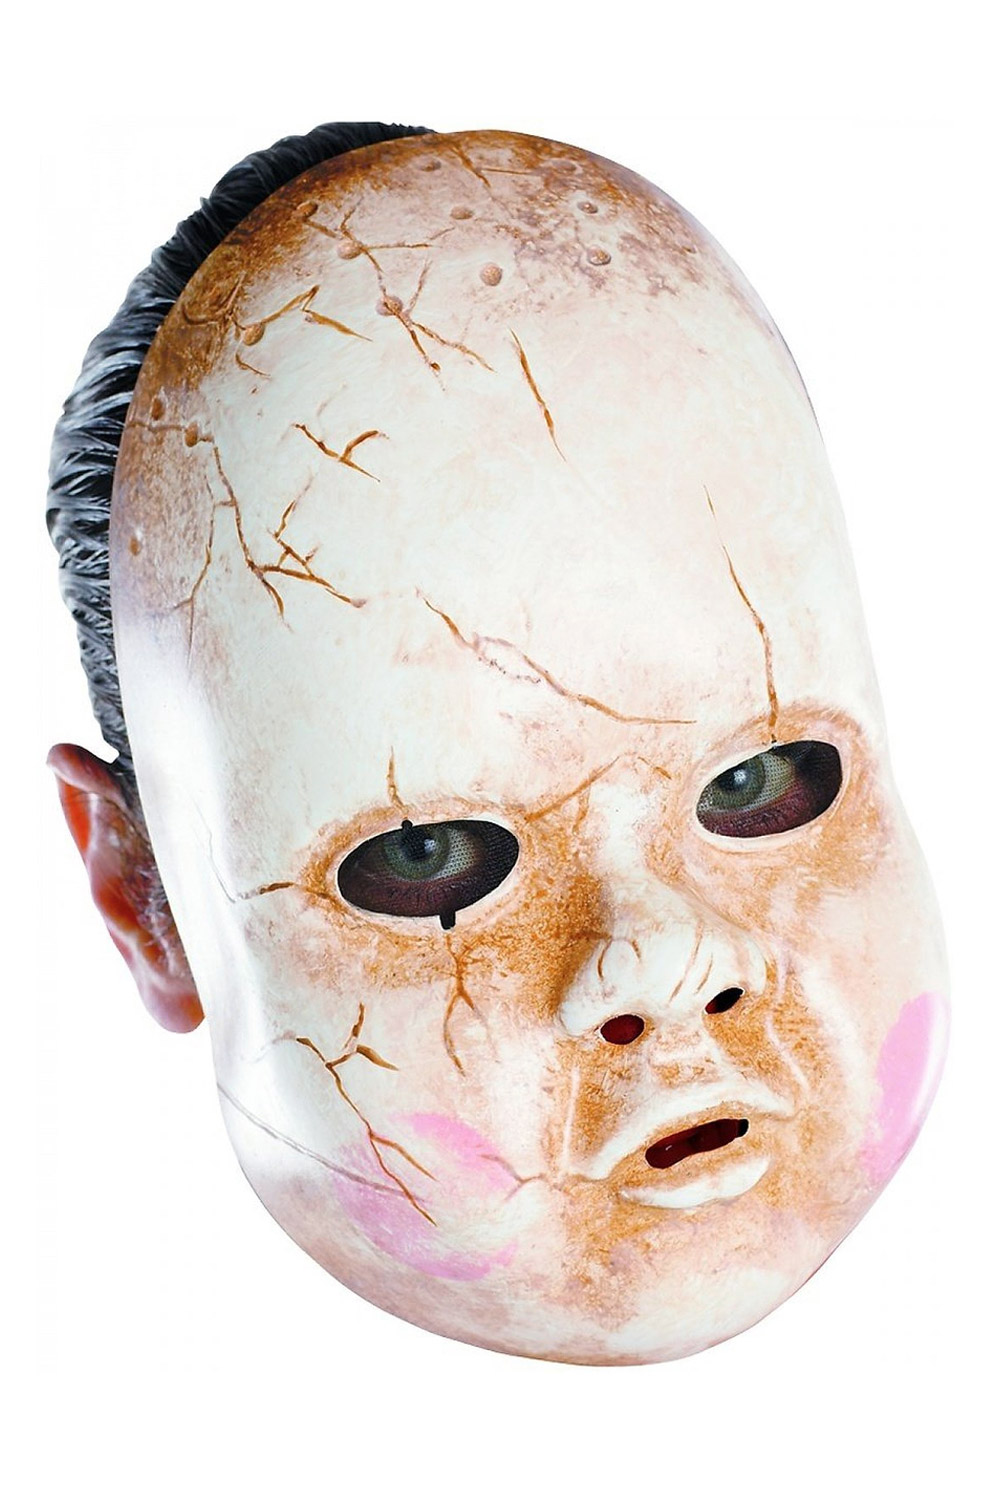 Scary Baby Doll Adult Vinyl Halloween Costume Accessory